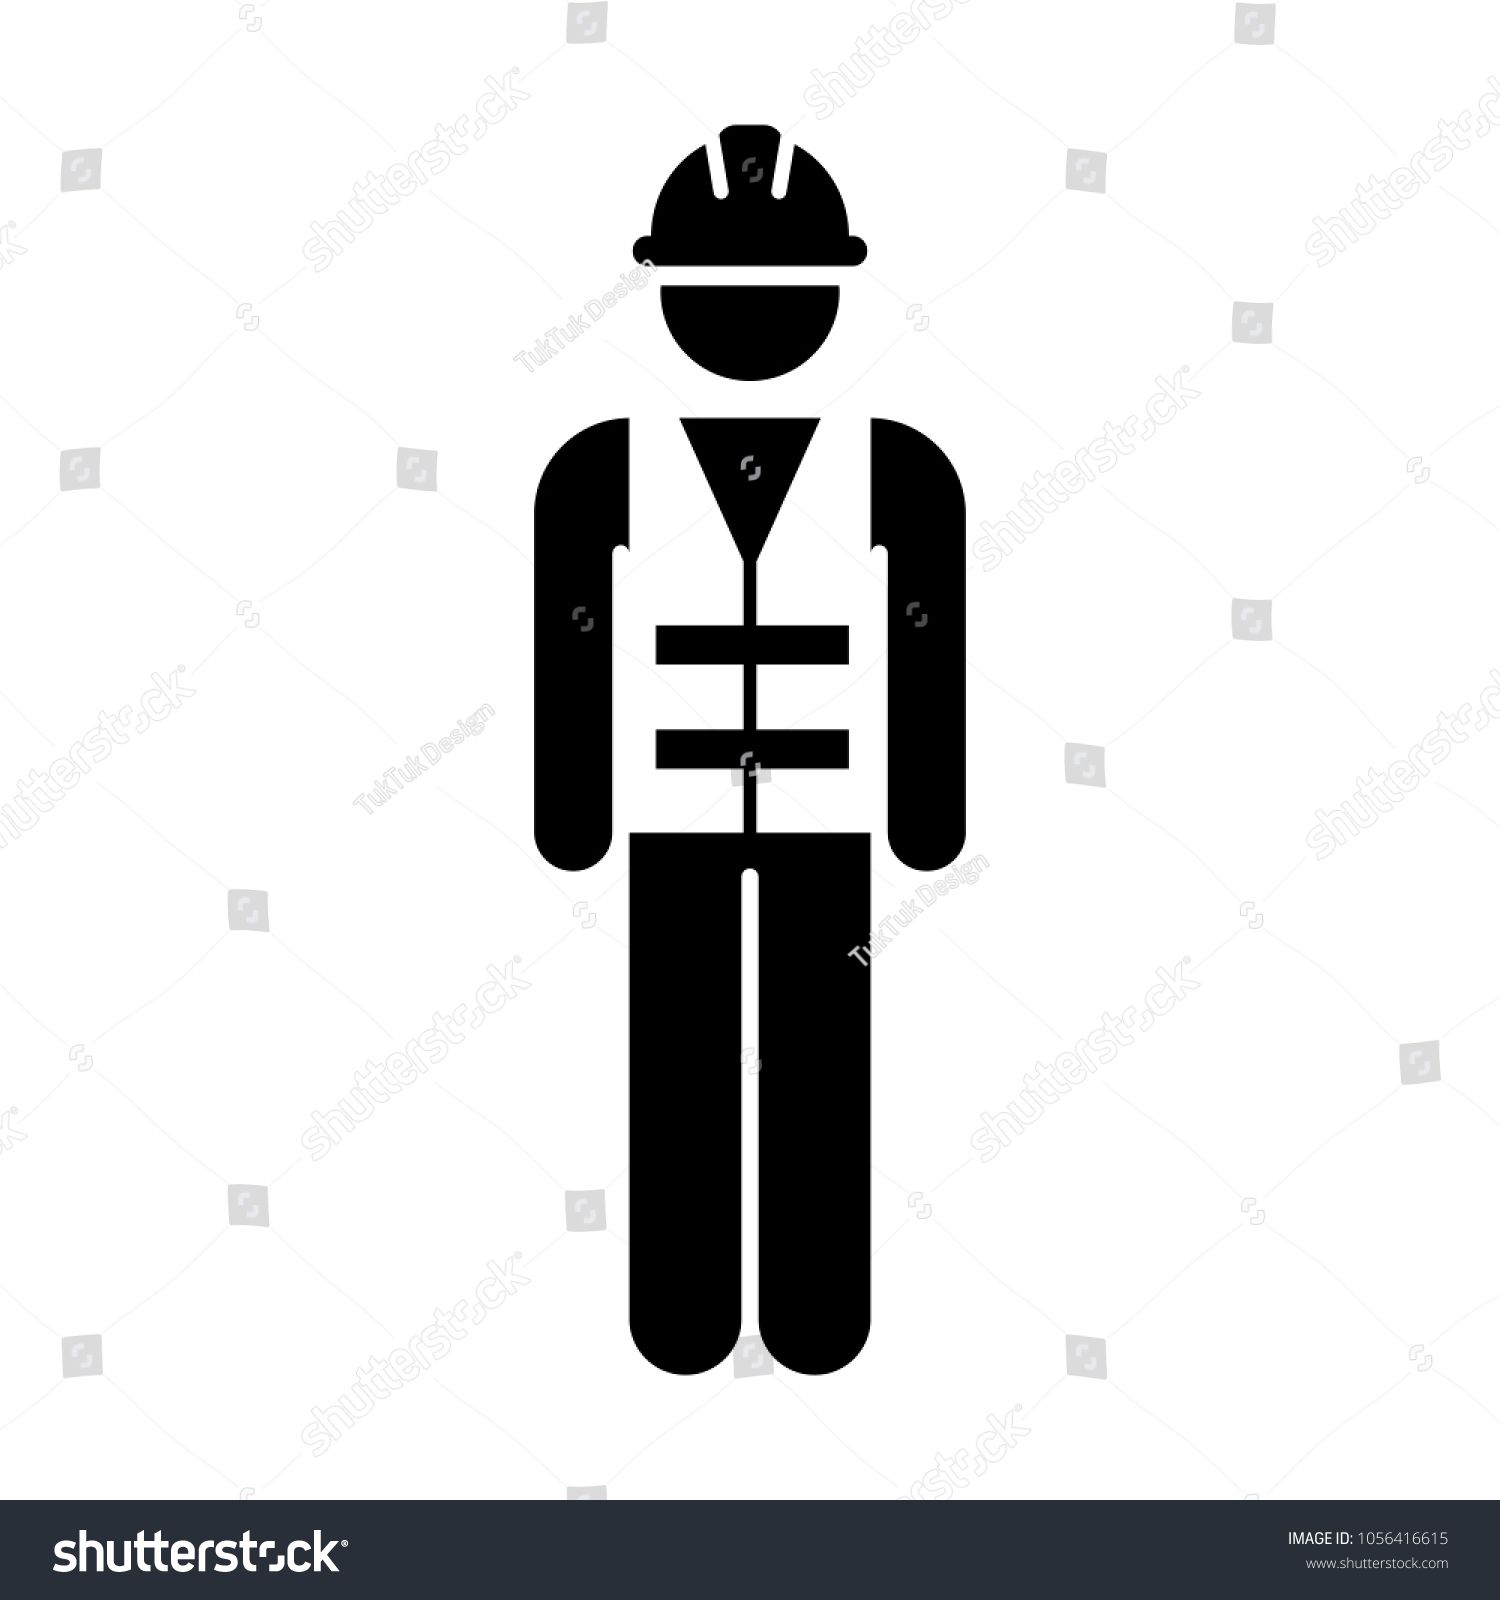 Worker Icon Vector Male Service Person Of Building Construction Workman With Hardhat Helmet And Jacket In Glyph Pictogram Symbol Illustra Pictogram Icon Vector